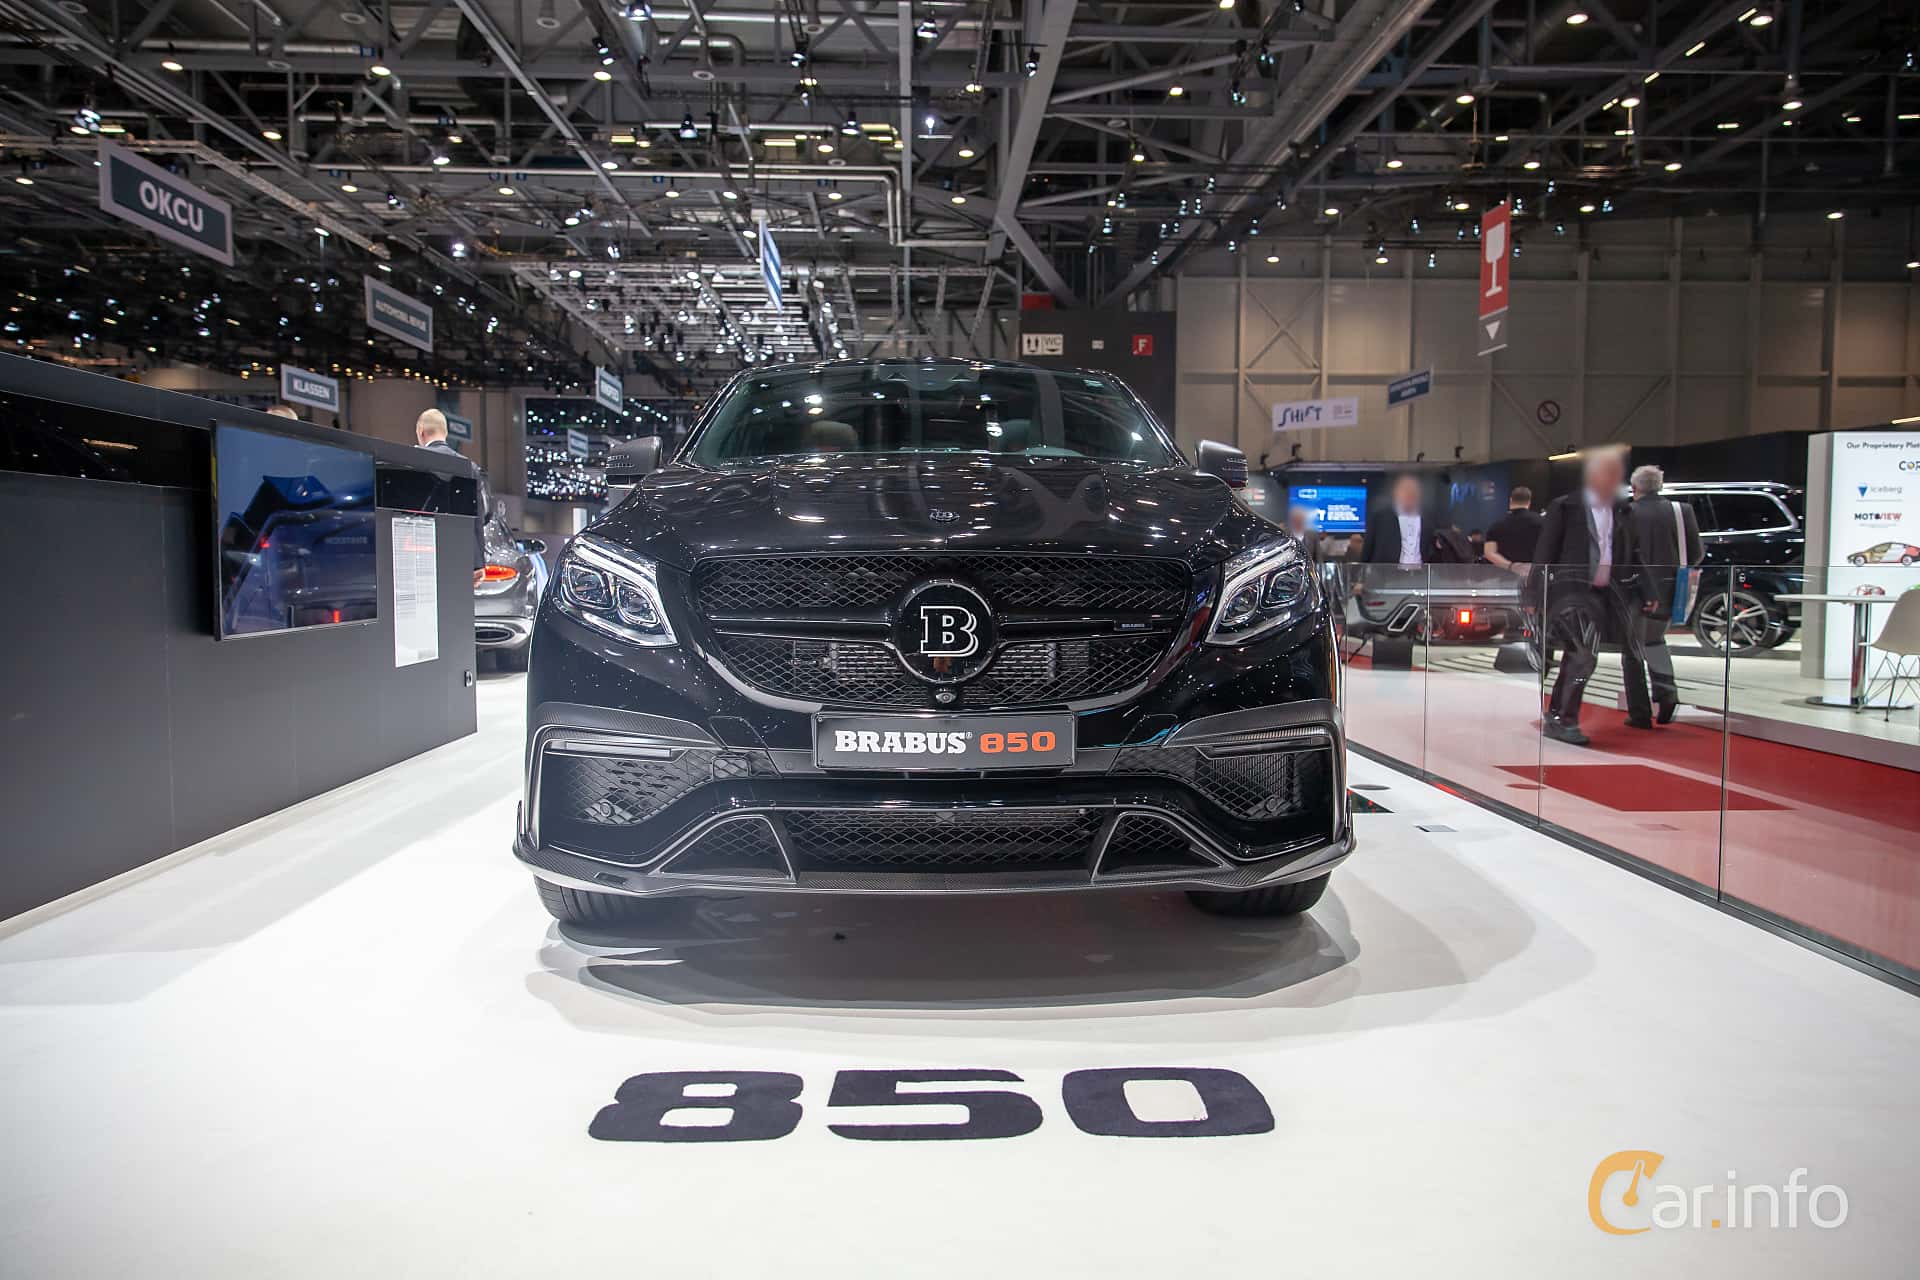 Front  of Brabus GLE 850 Coupé  AMG-SpeedShift Plus 7G-Tronic, 850ps, 2019 at Geneva Motor Show 2019